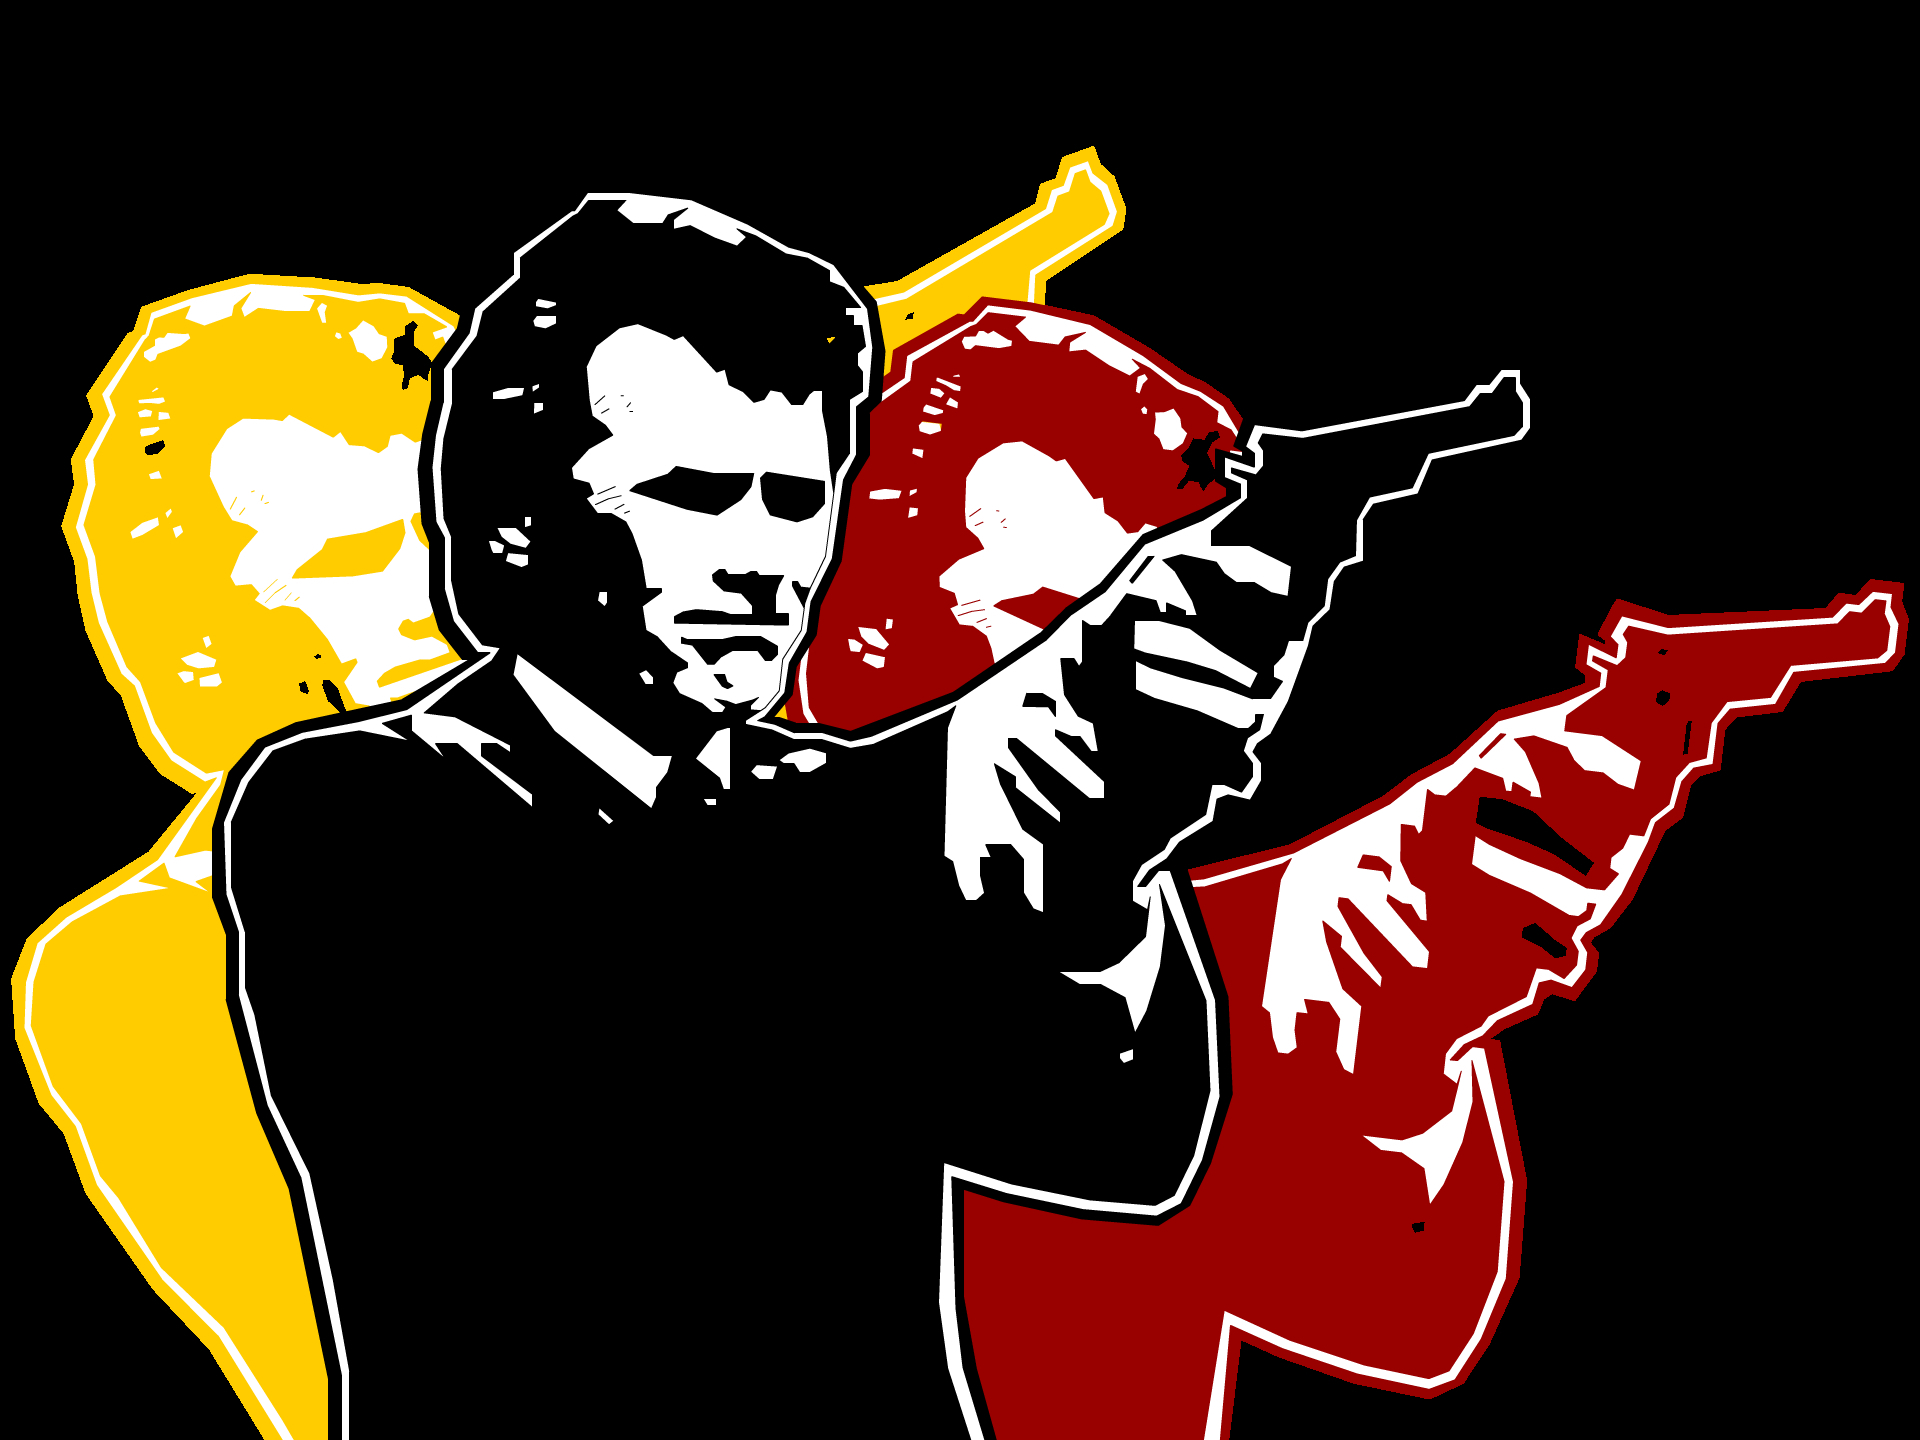 Guns clint eastwood Dirty HD Wallpaper